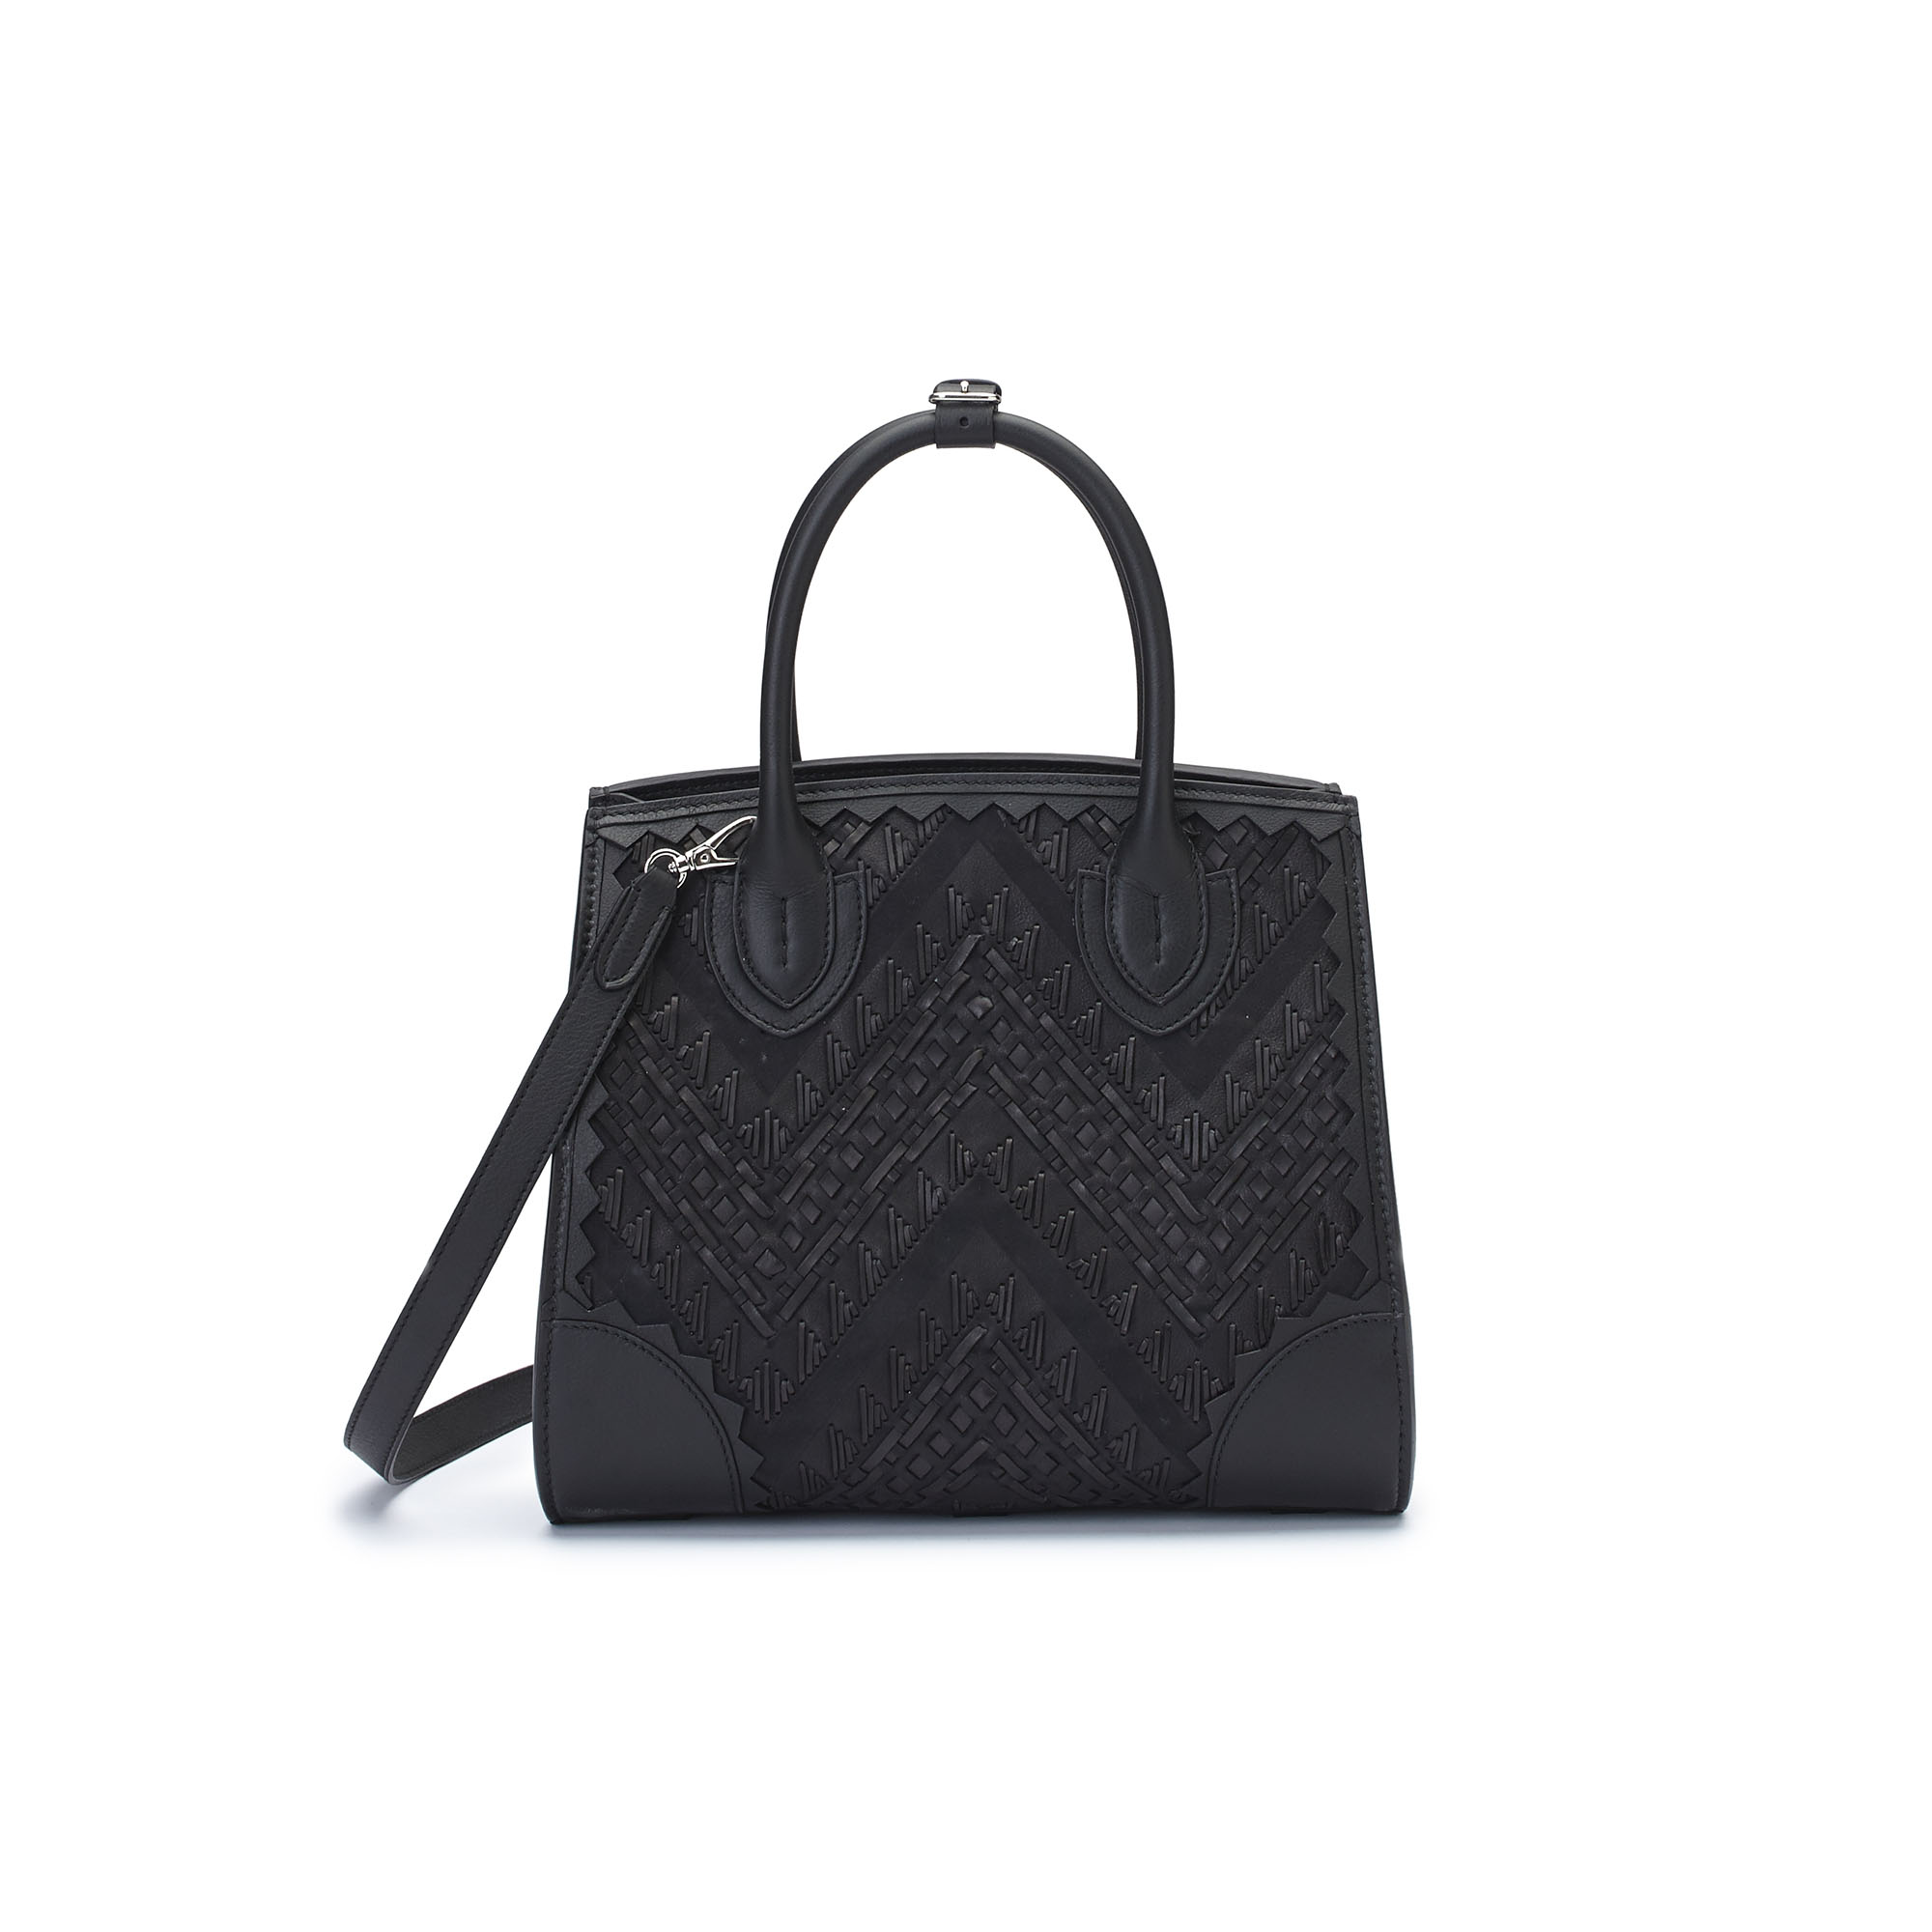 The black stranded leather with soft calf Darcy bag by Bertoni 1949 03